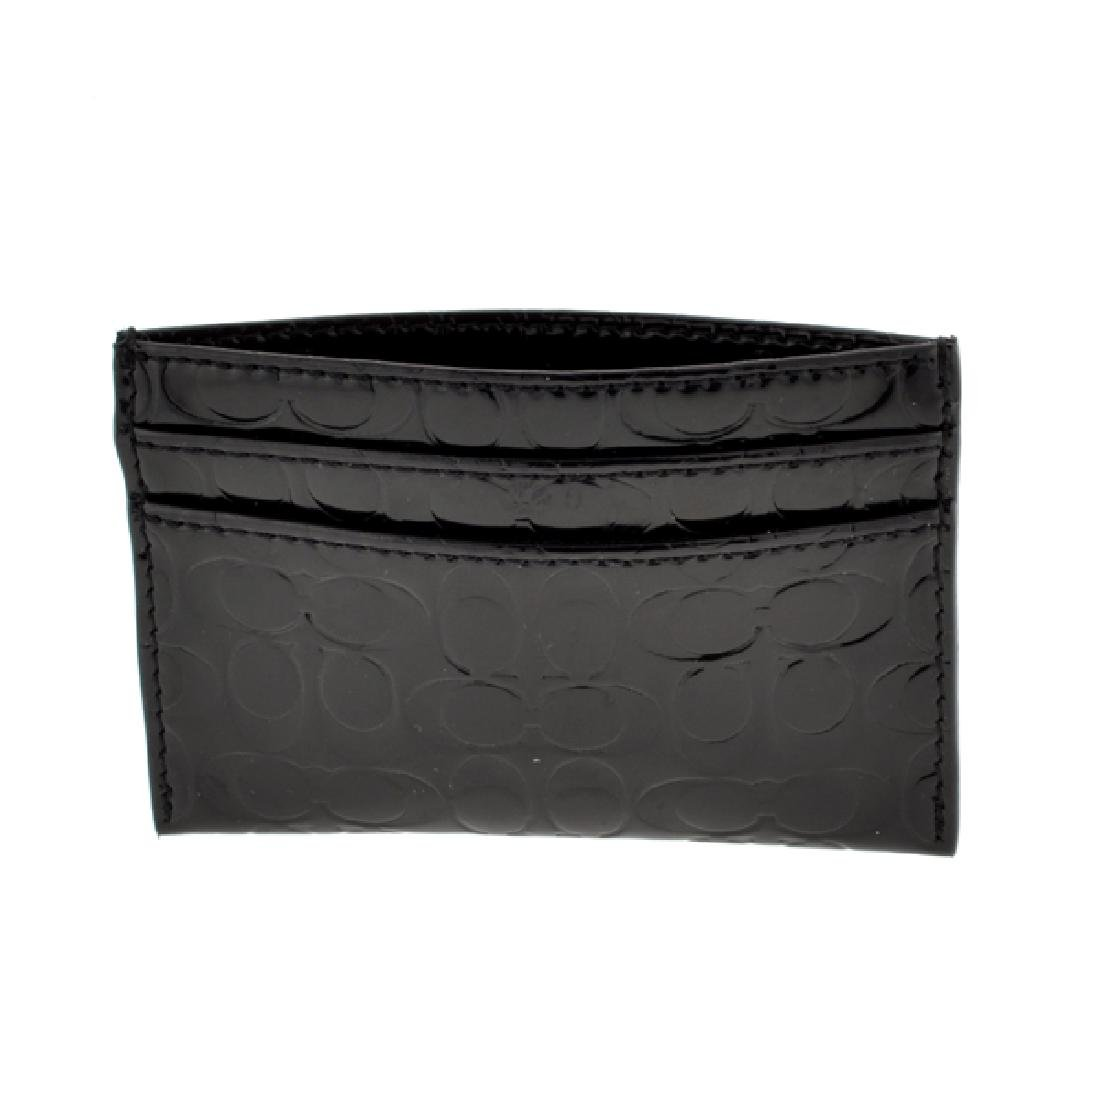 Brand New Coach Embossed Black Liquid Gloss Card Case